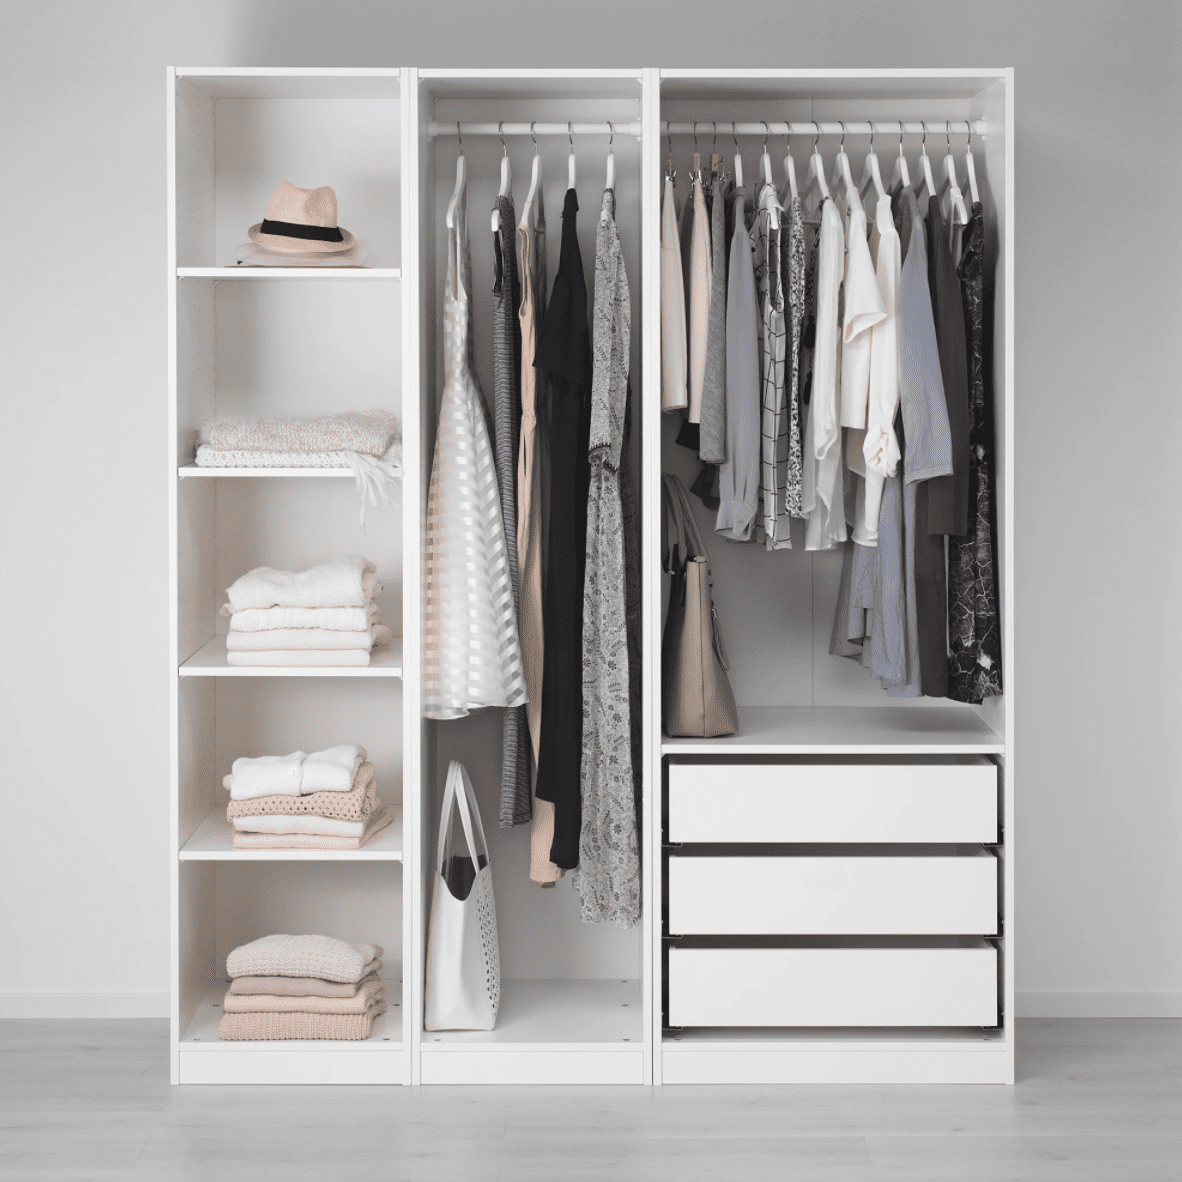 A large white wardrobe, which is currently for sale at IKEA